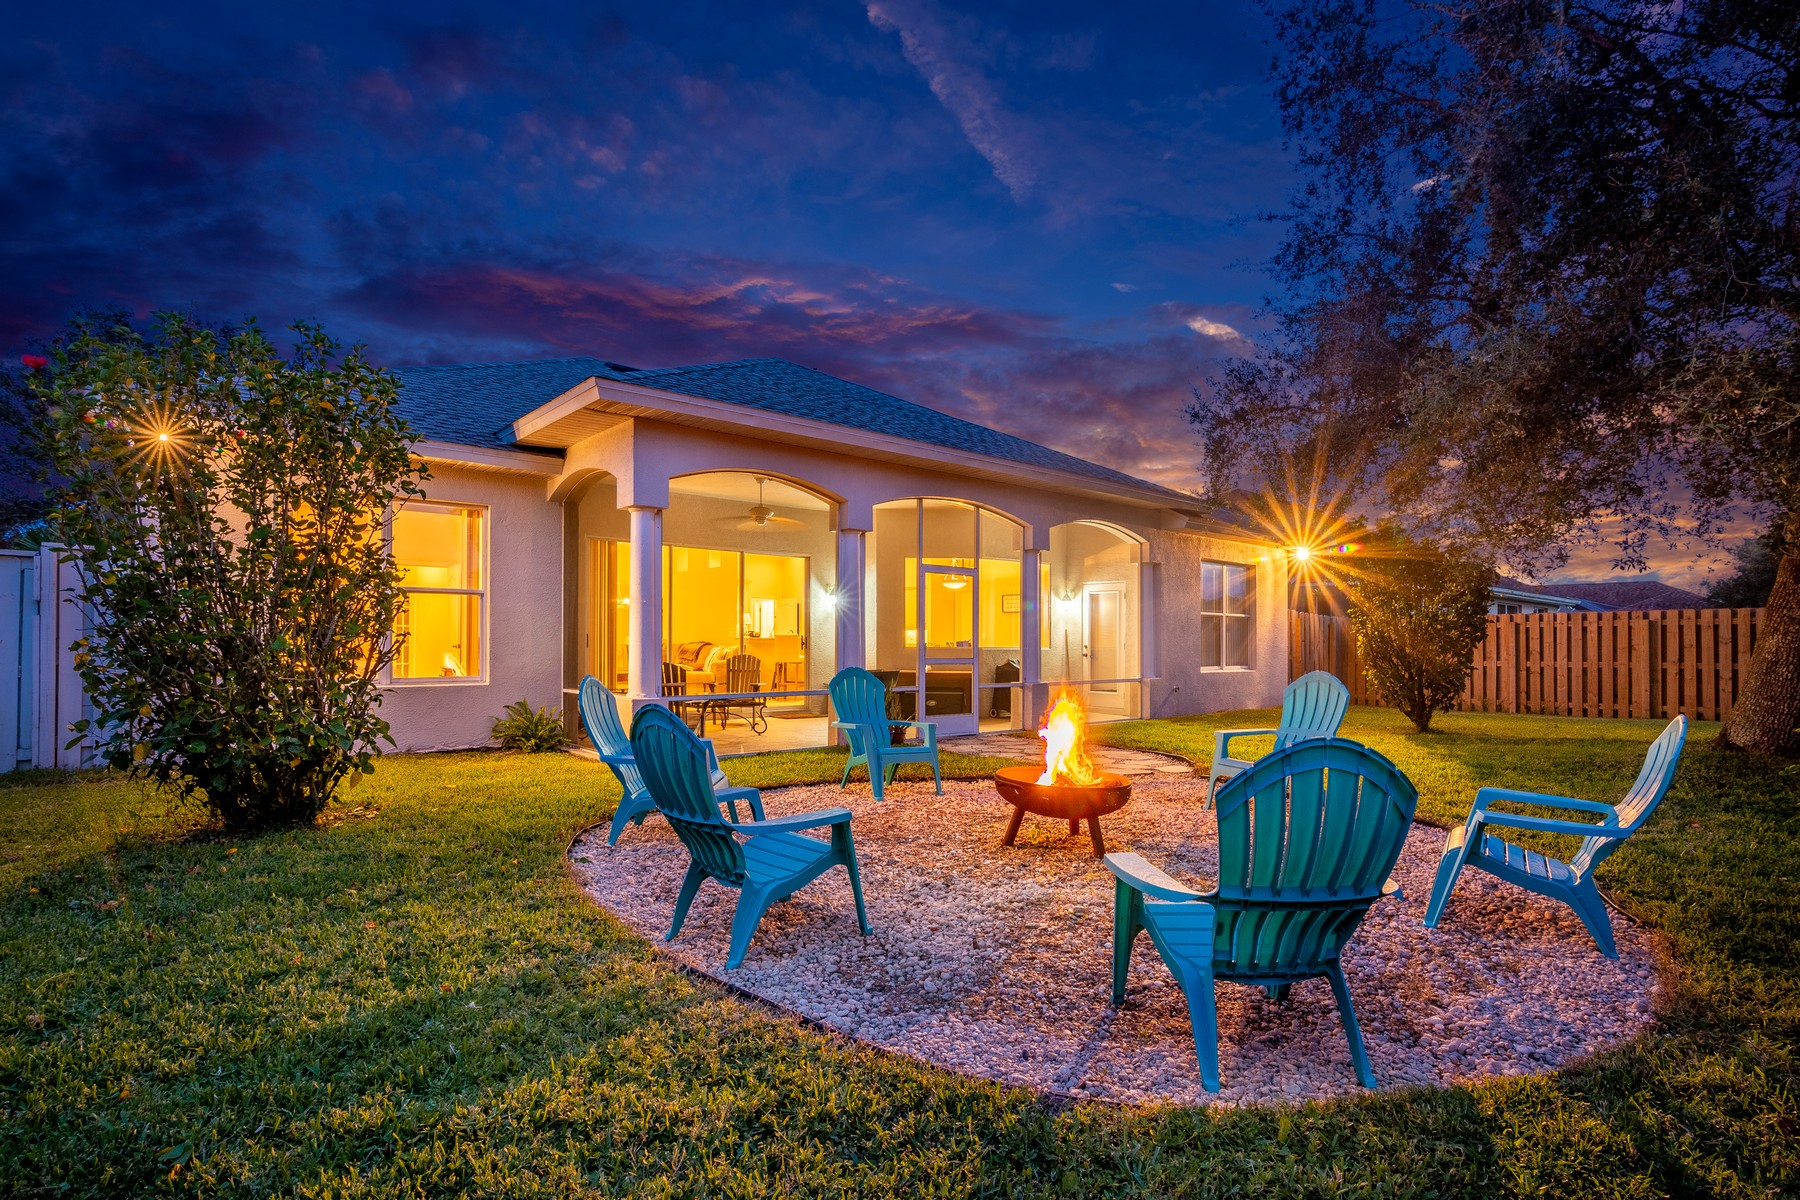 Single Family Homes for Sale at Beautifully Maintained 3/2 in Desirable Viera 2611 Canterbury Circle Rockledge, Florida 32955 United States